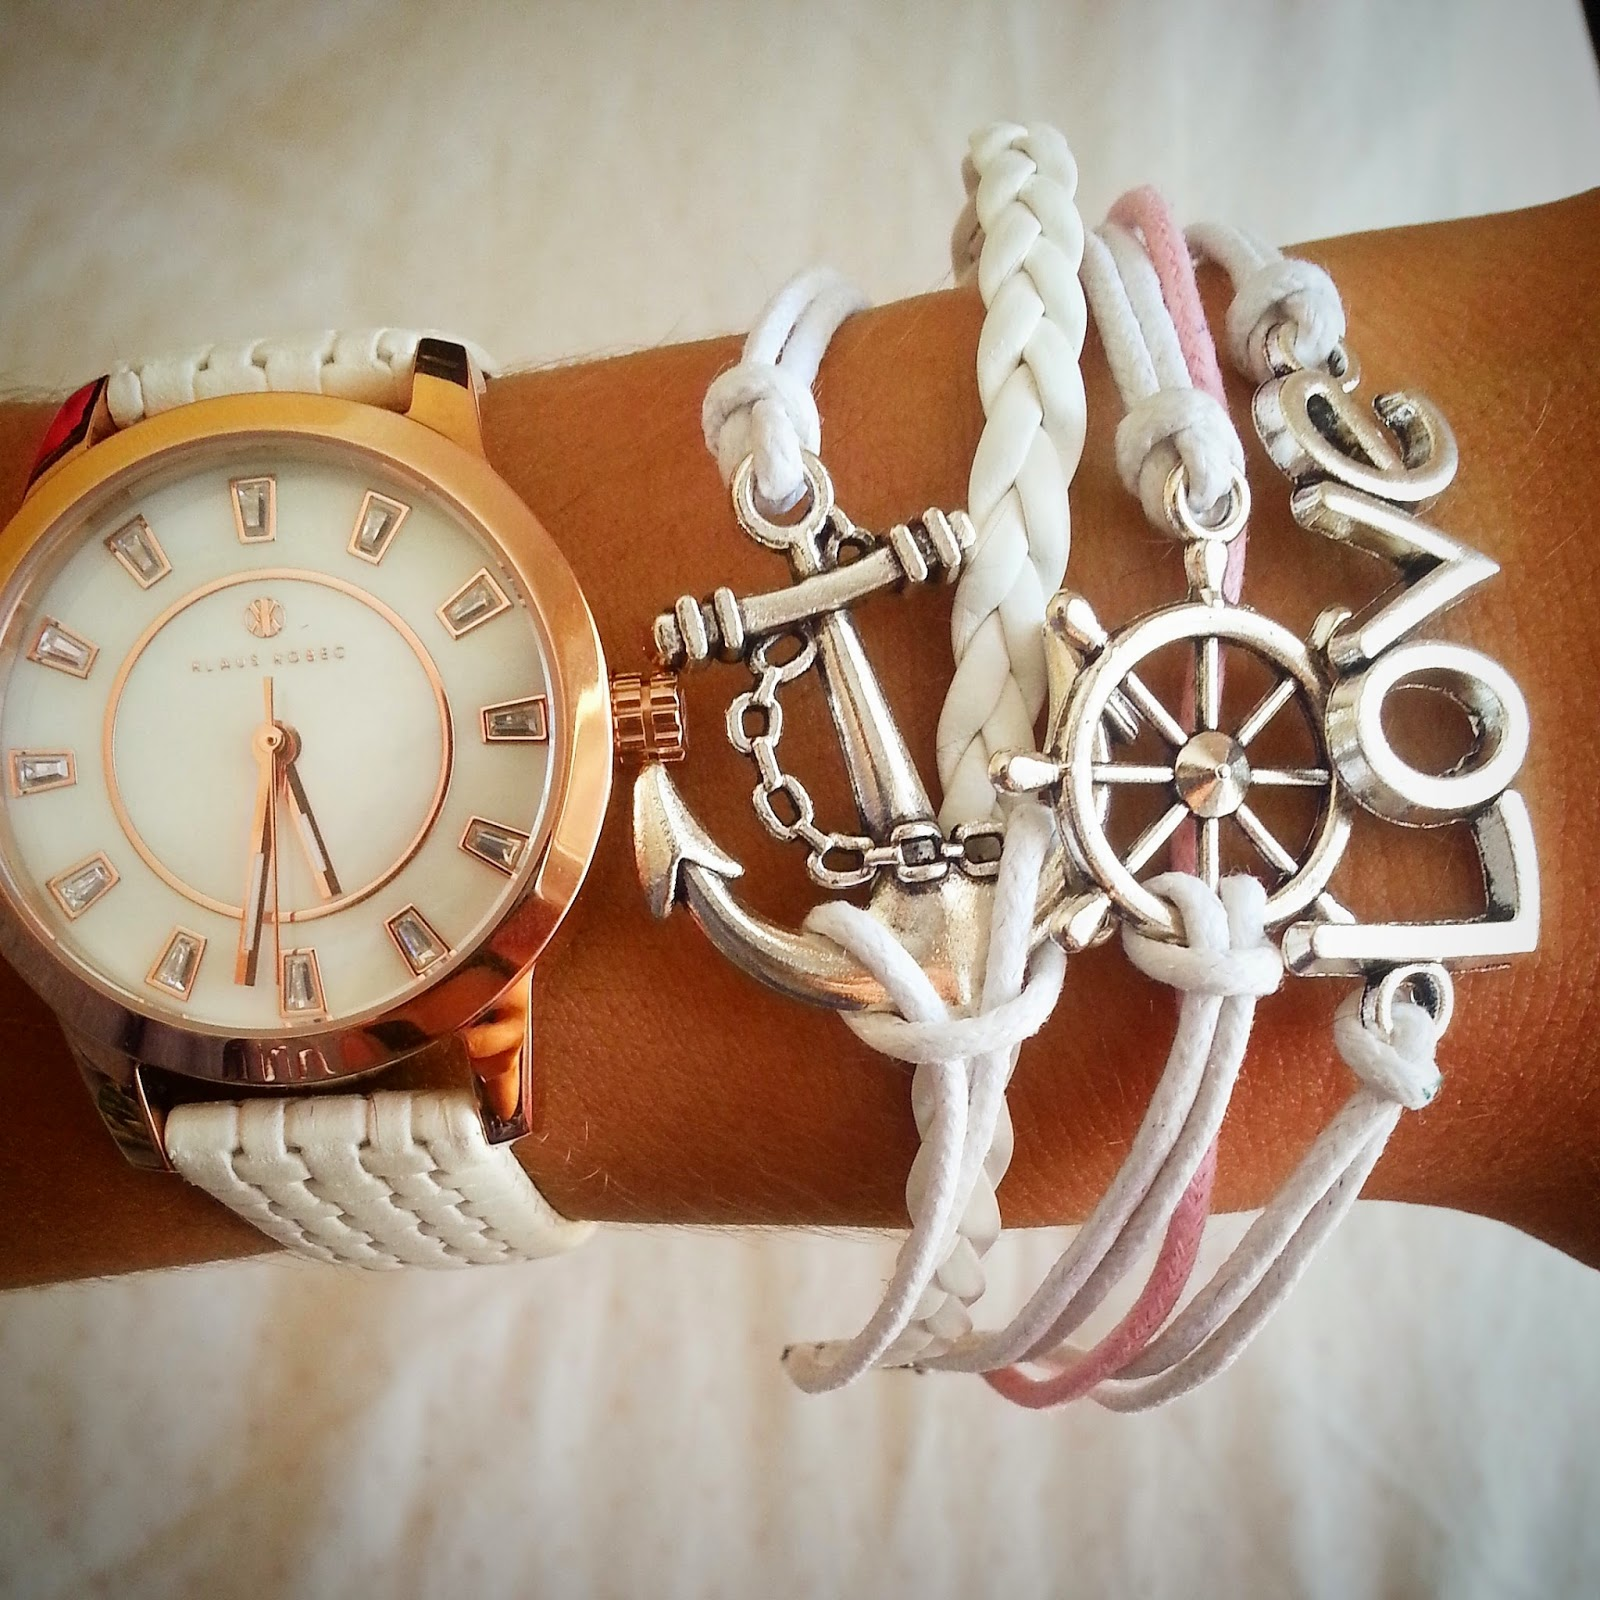 arm candy, watch, anchor chain, anchor trend, love, arm bracelets, bracelets, klaus kobec watch, arm candy and stuff,